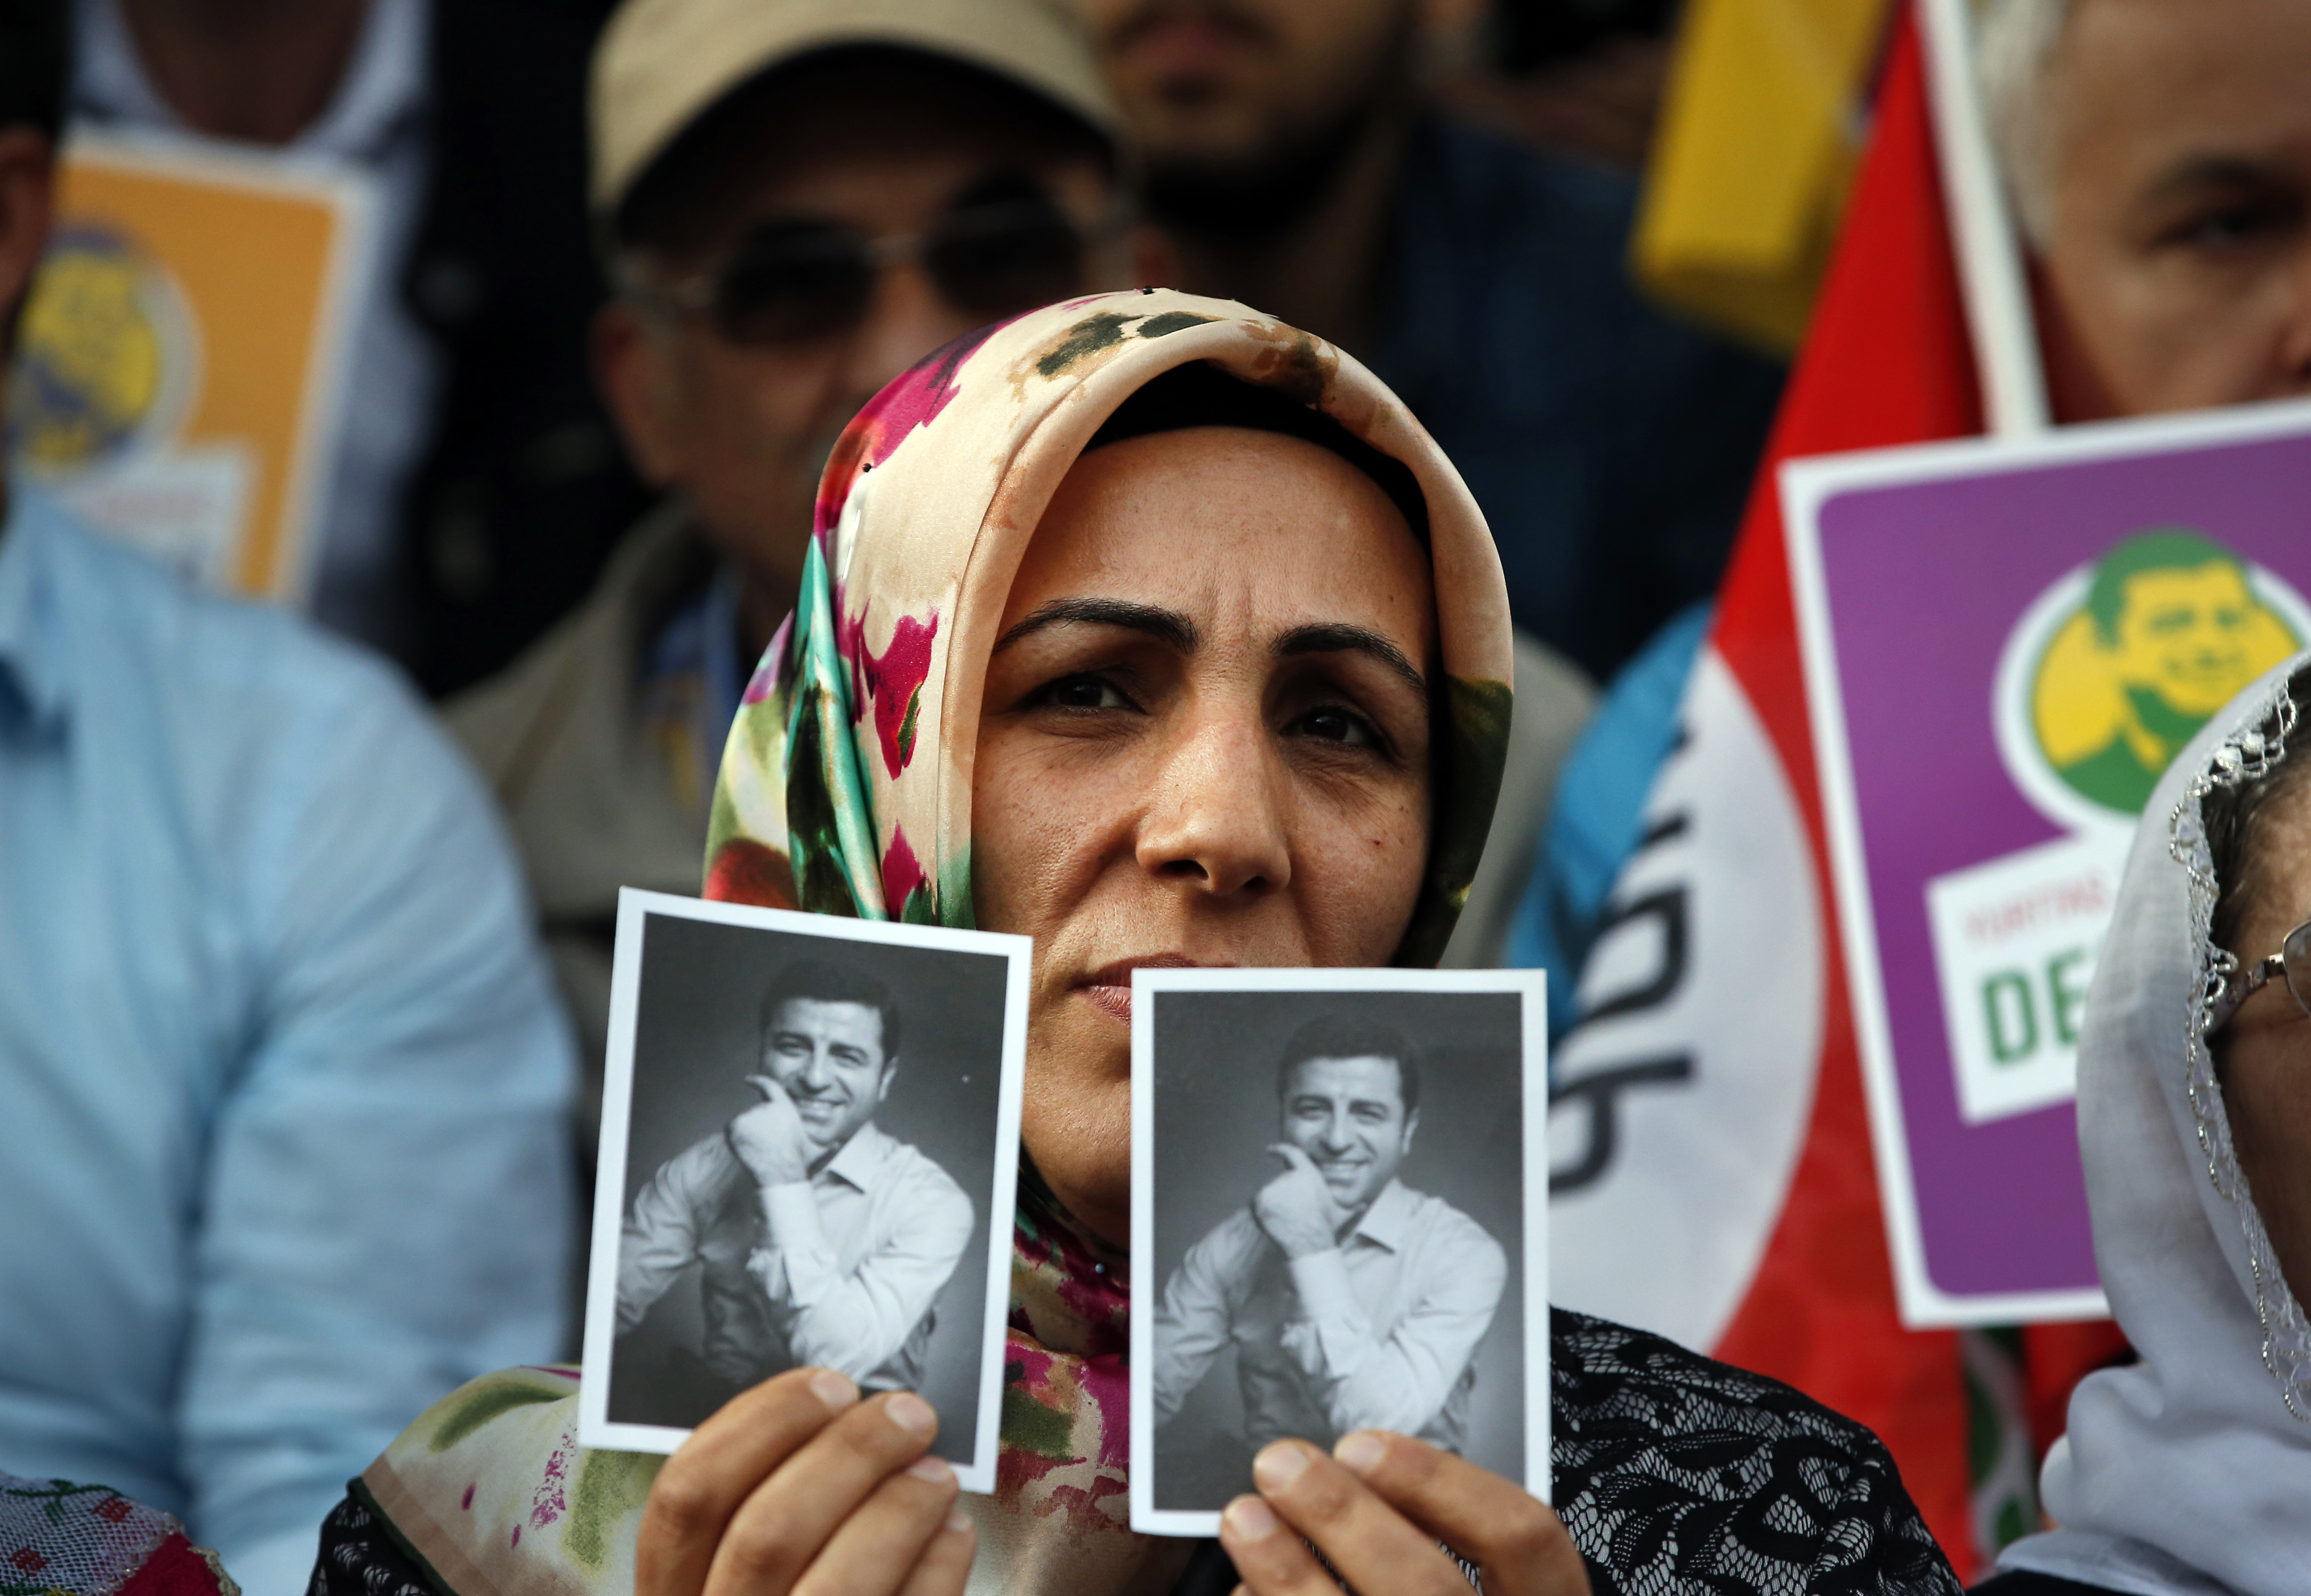 Supporters of the pro-Kurdish Peoples' Democratic Party (HDP) some holding pictures of the party's former co-leader Selahattin Demirtas, currently in prison on charges of leading a terror organisation, chant slogans during a rally announcing him as a...